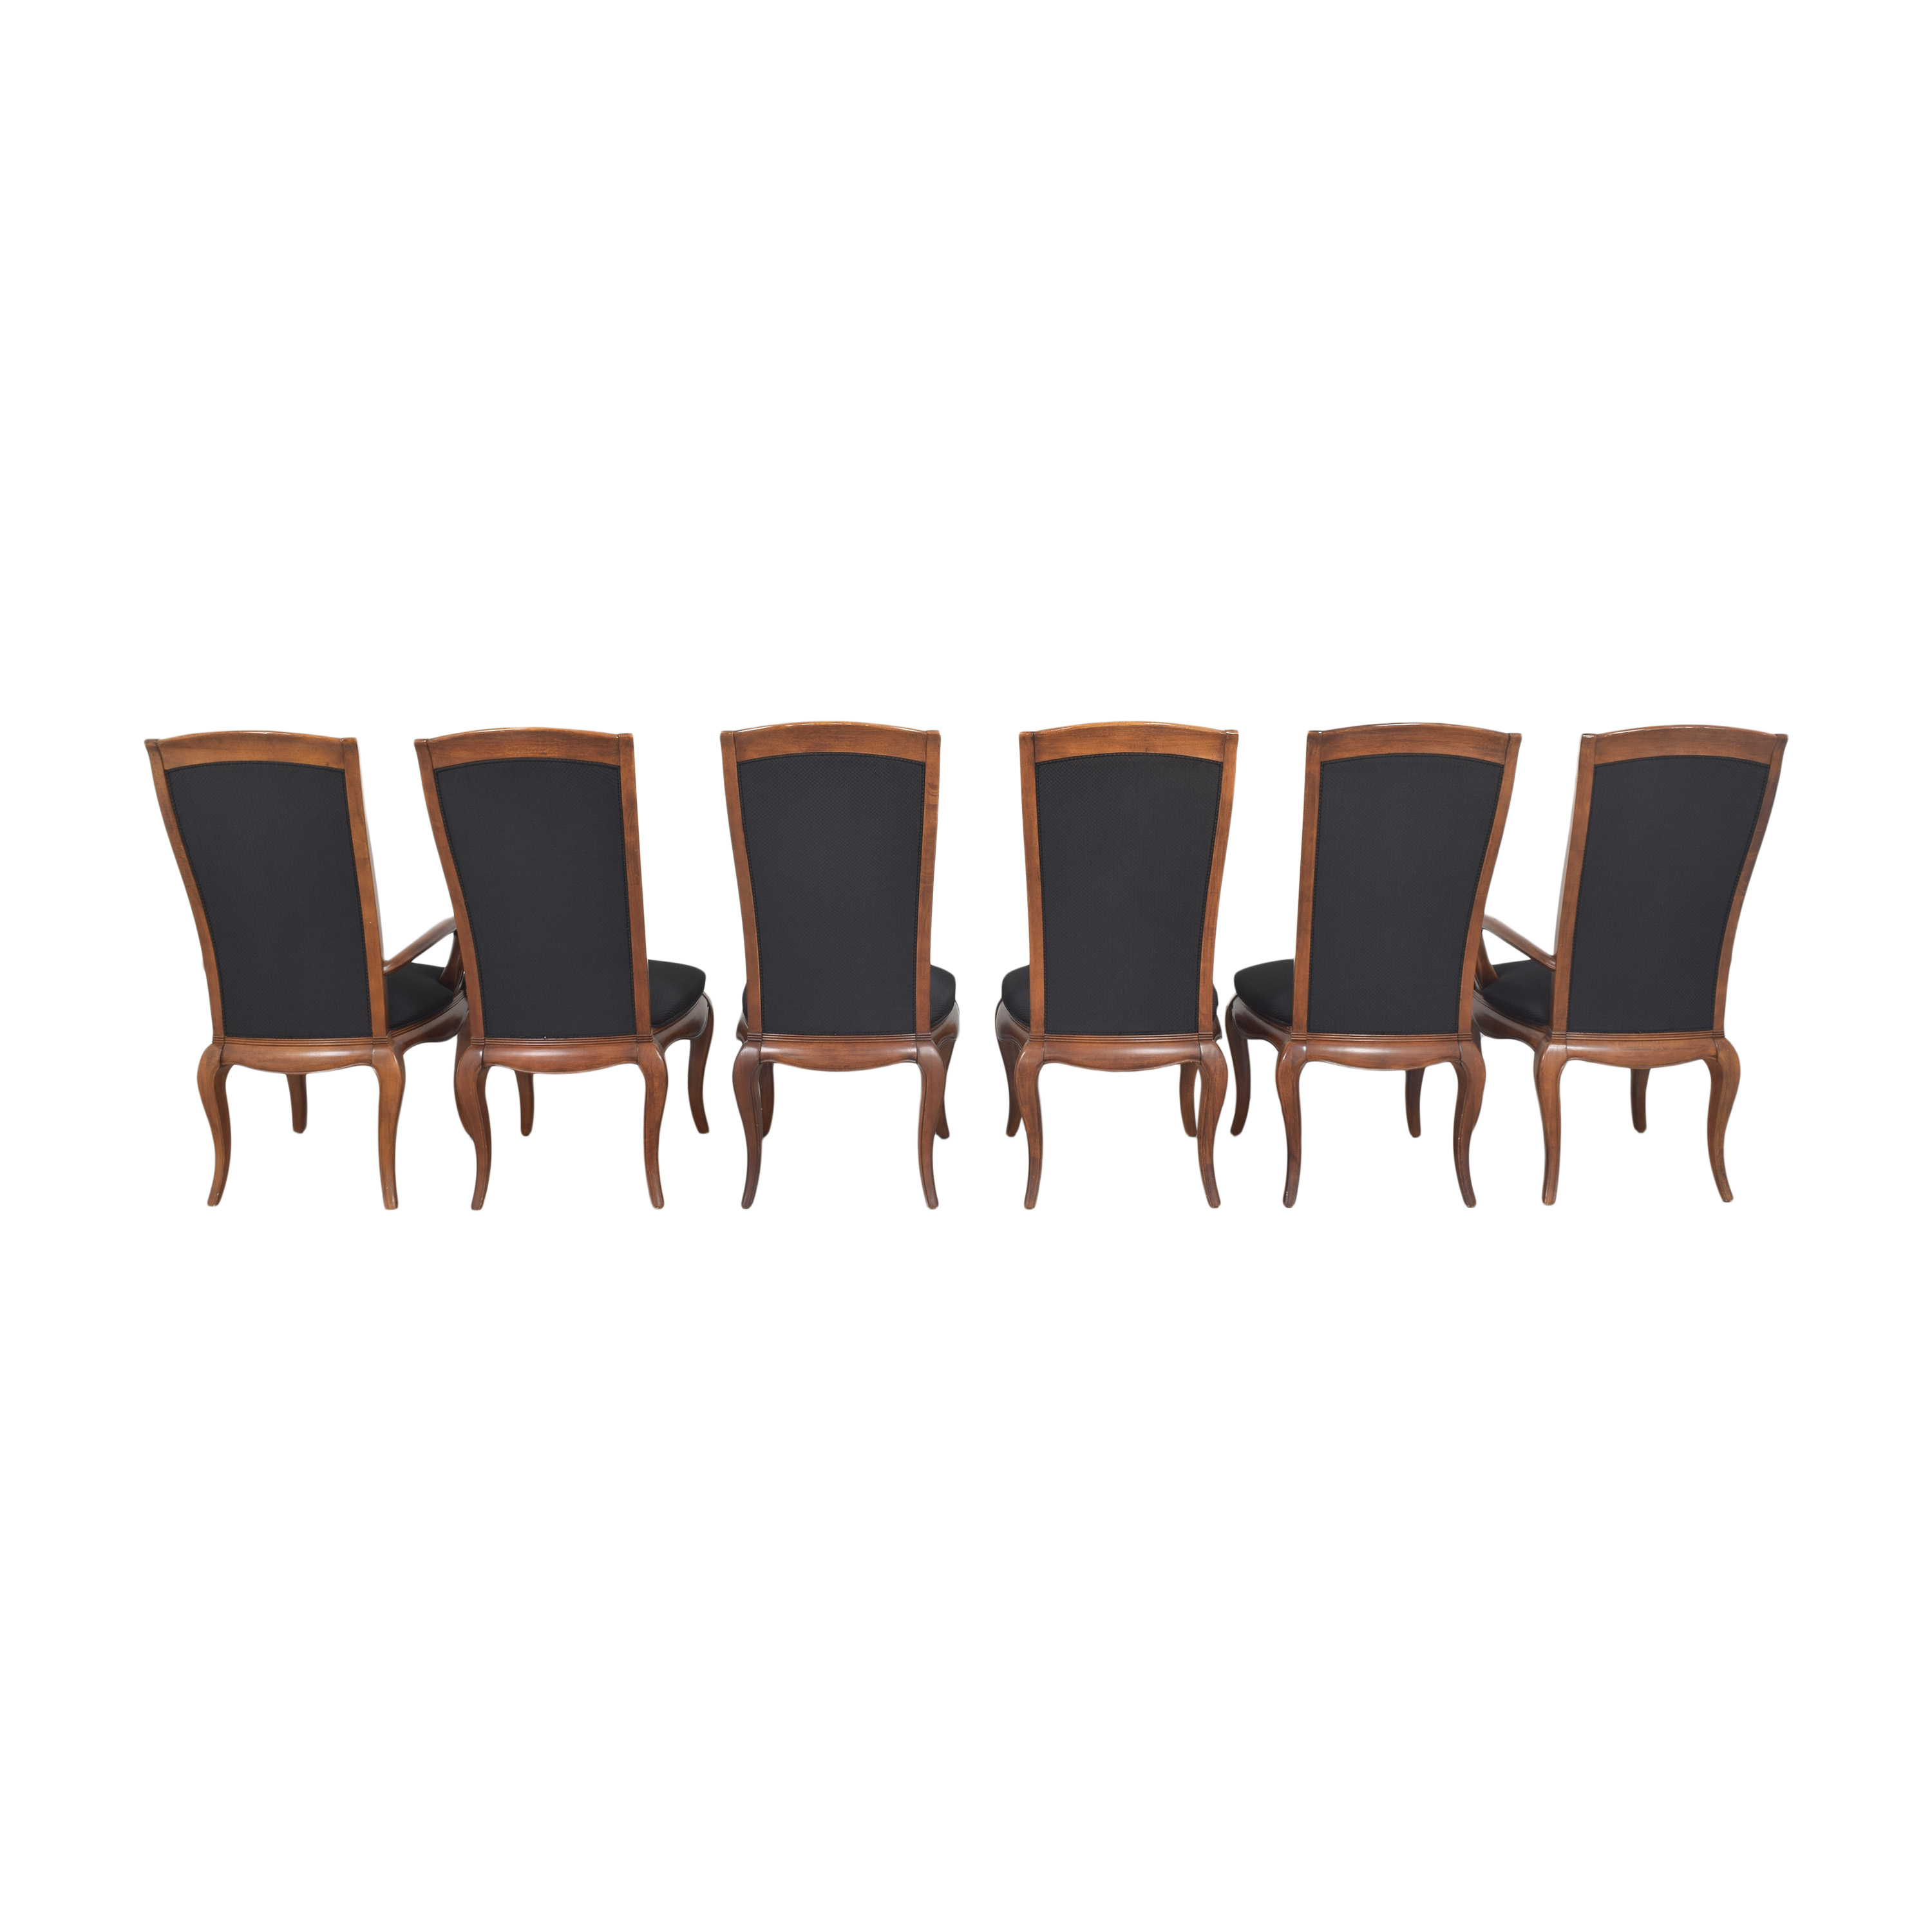 buy American Drew American Drew Upholstered Dining Chairs online